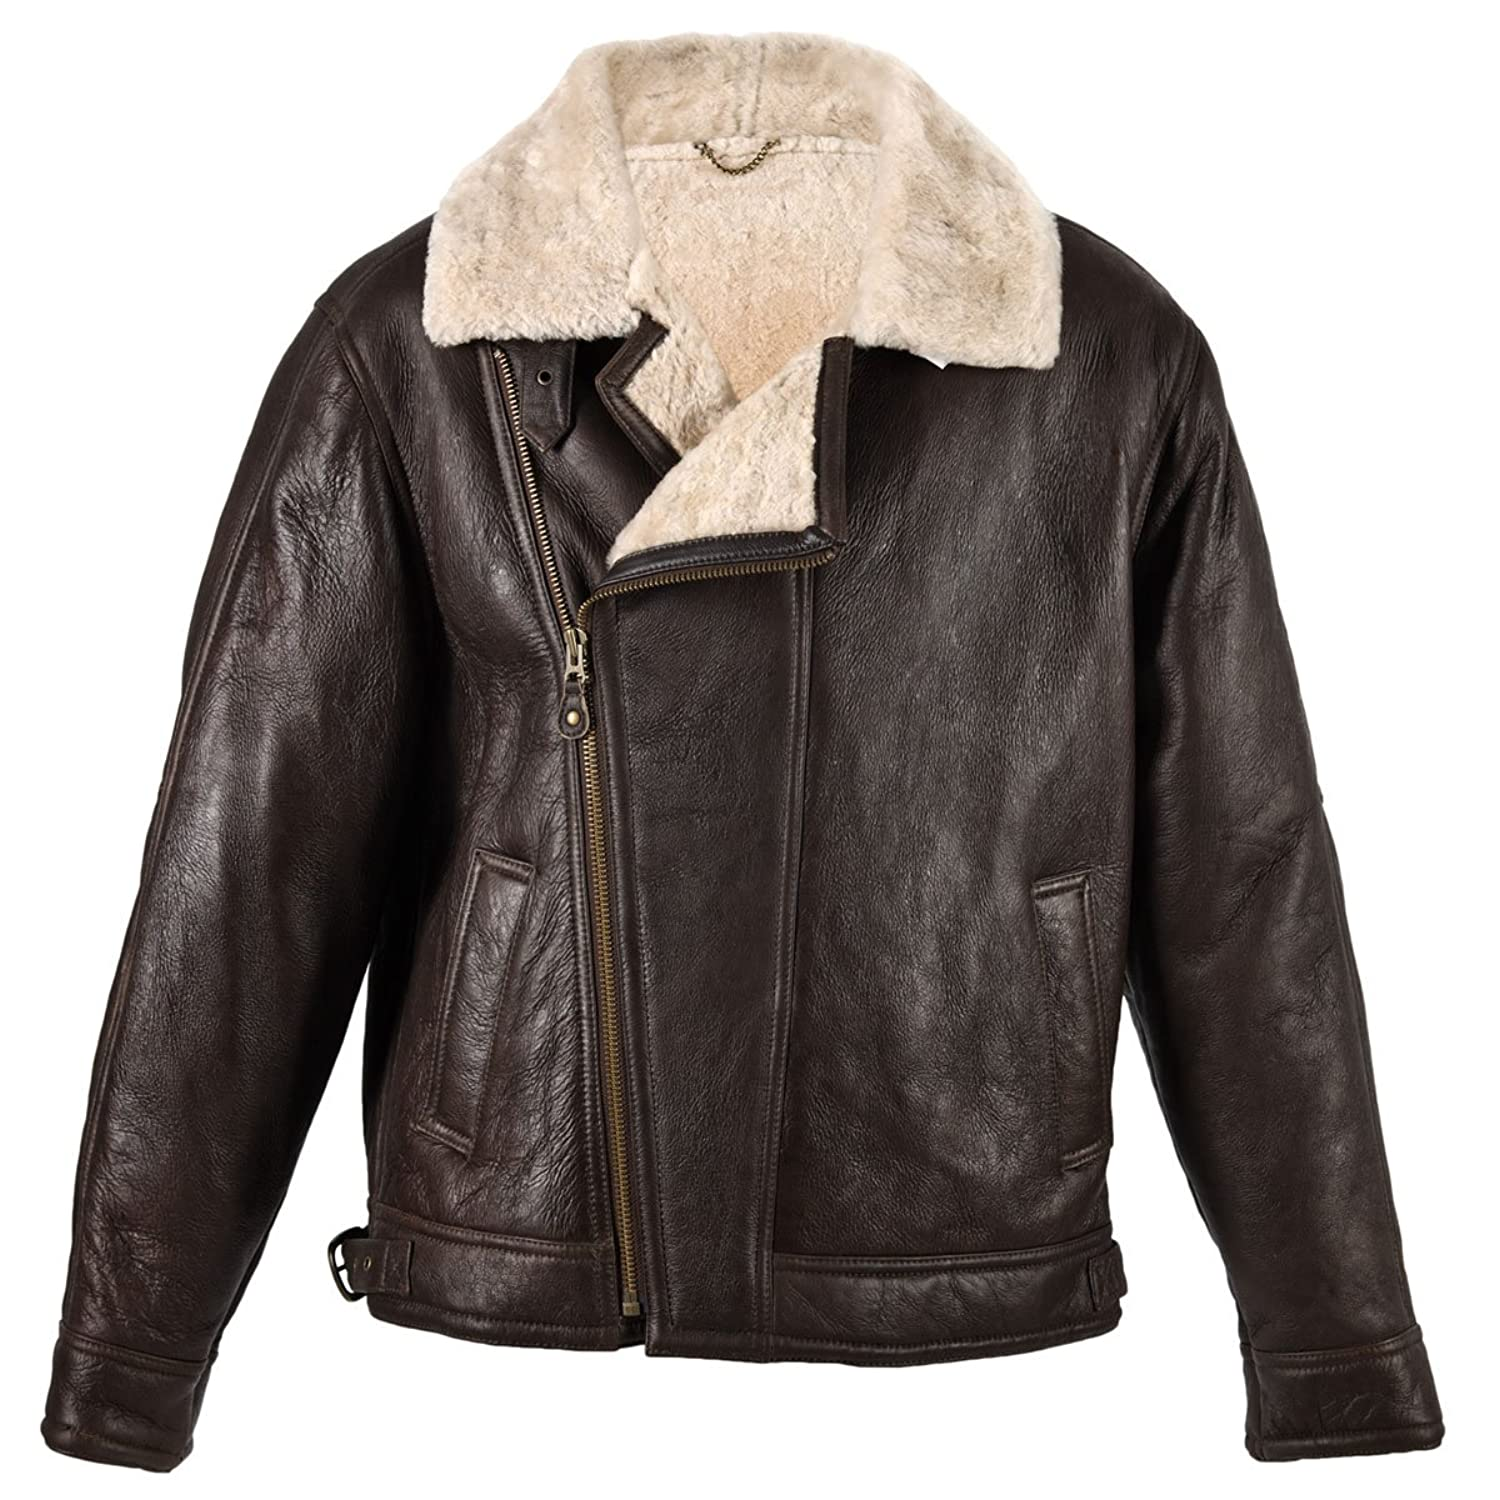 B3 shearling sheepskin raf wwii bomber leather flying aviator jacket - Arnicus Mens Brown Sheepskin Leather Aviator Flying Bomber Jacket